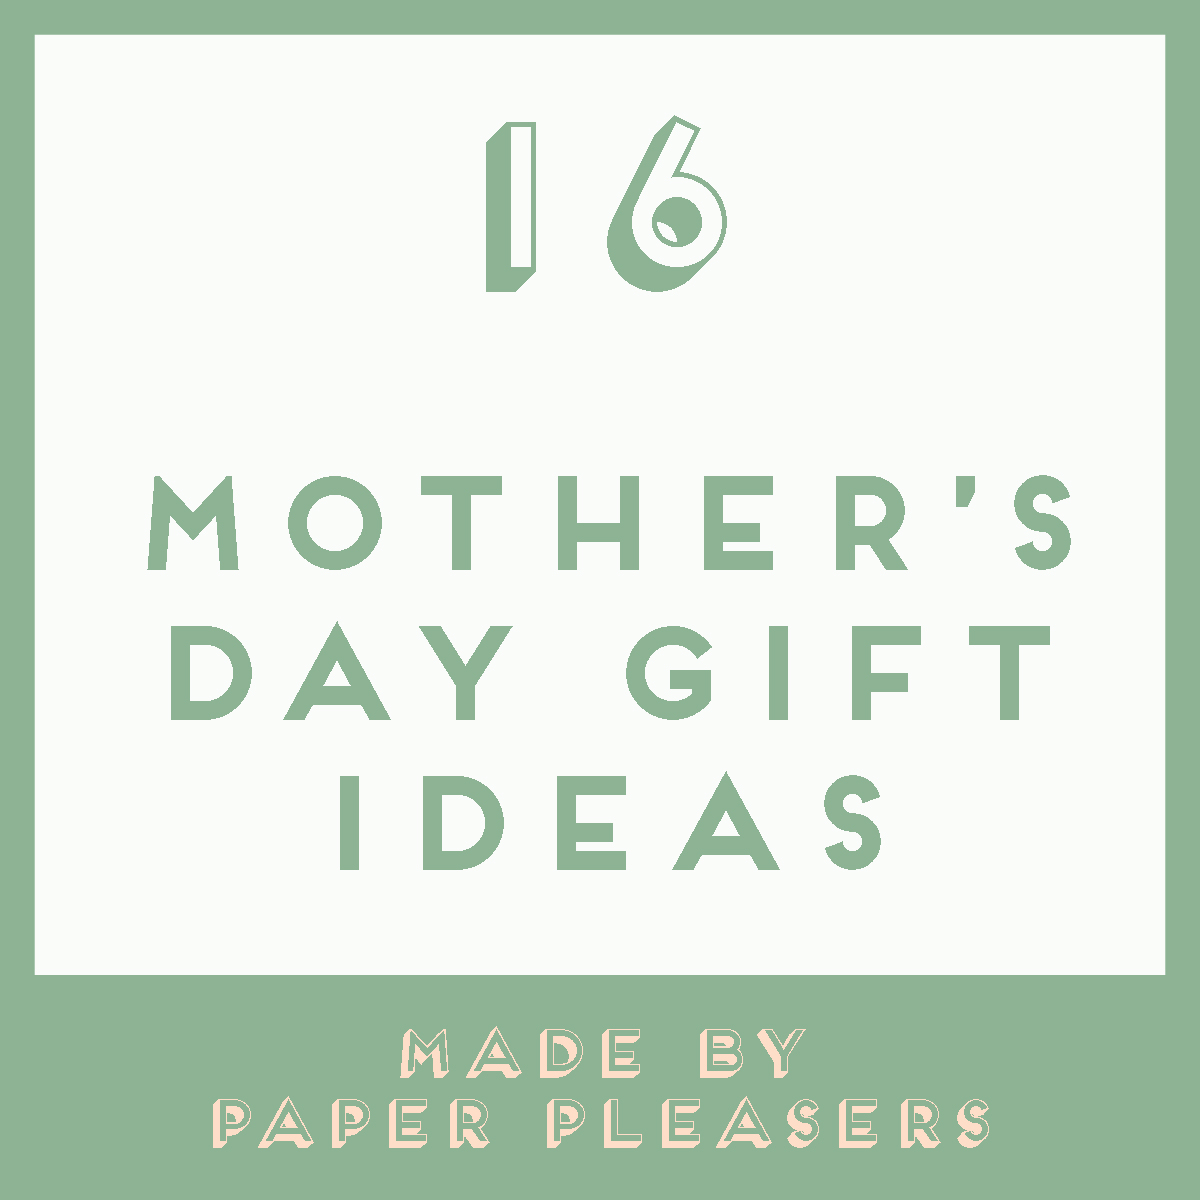 16-mothers-day-gift-ideas.jpg